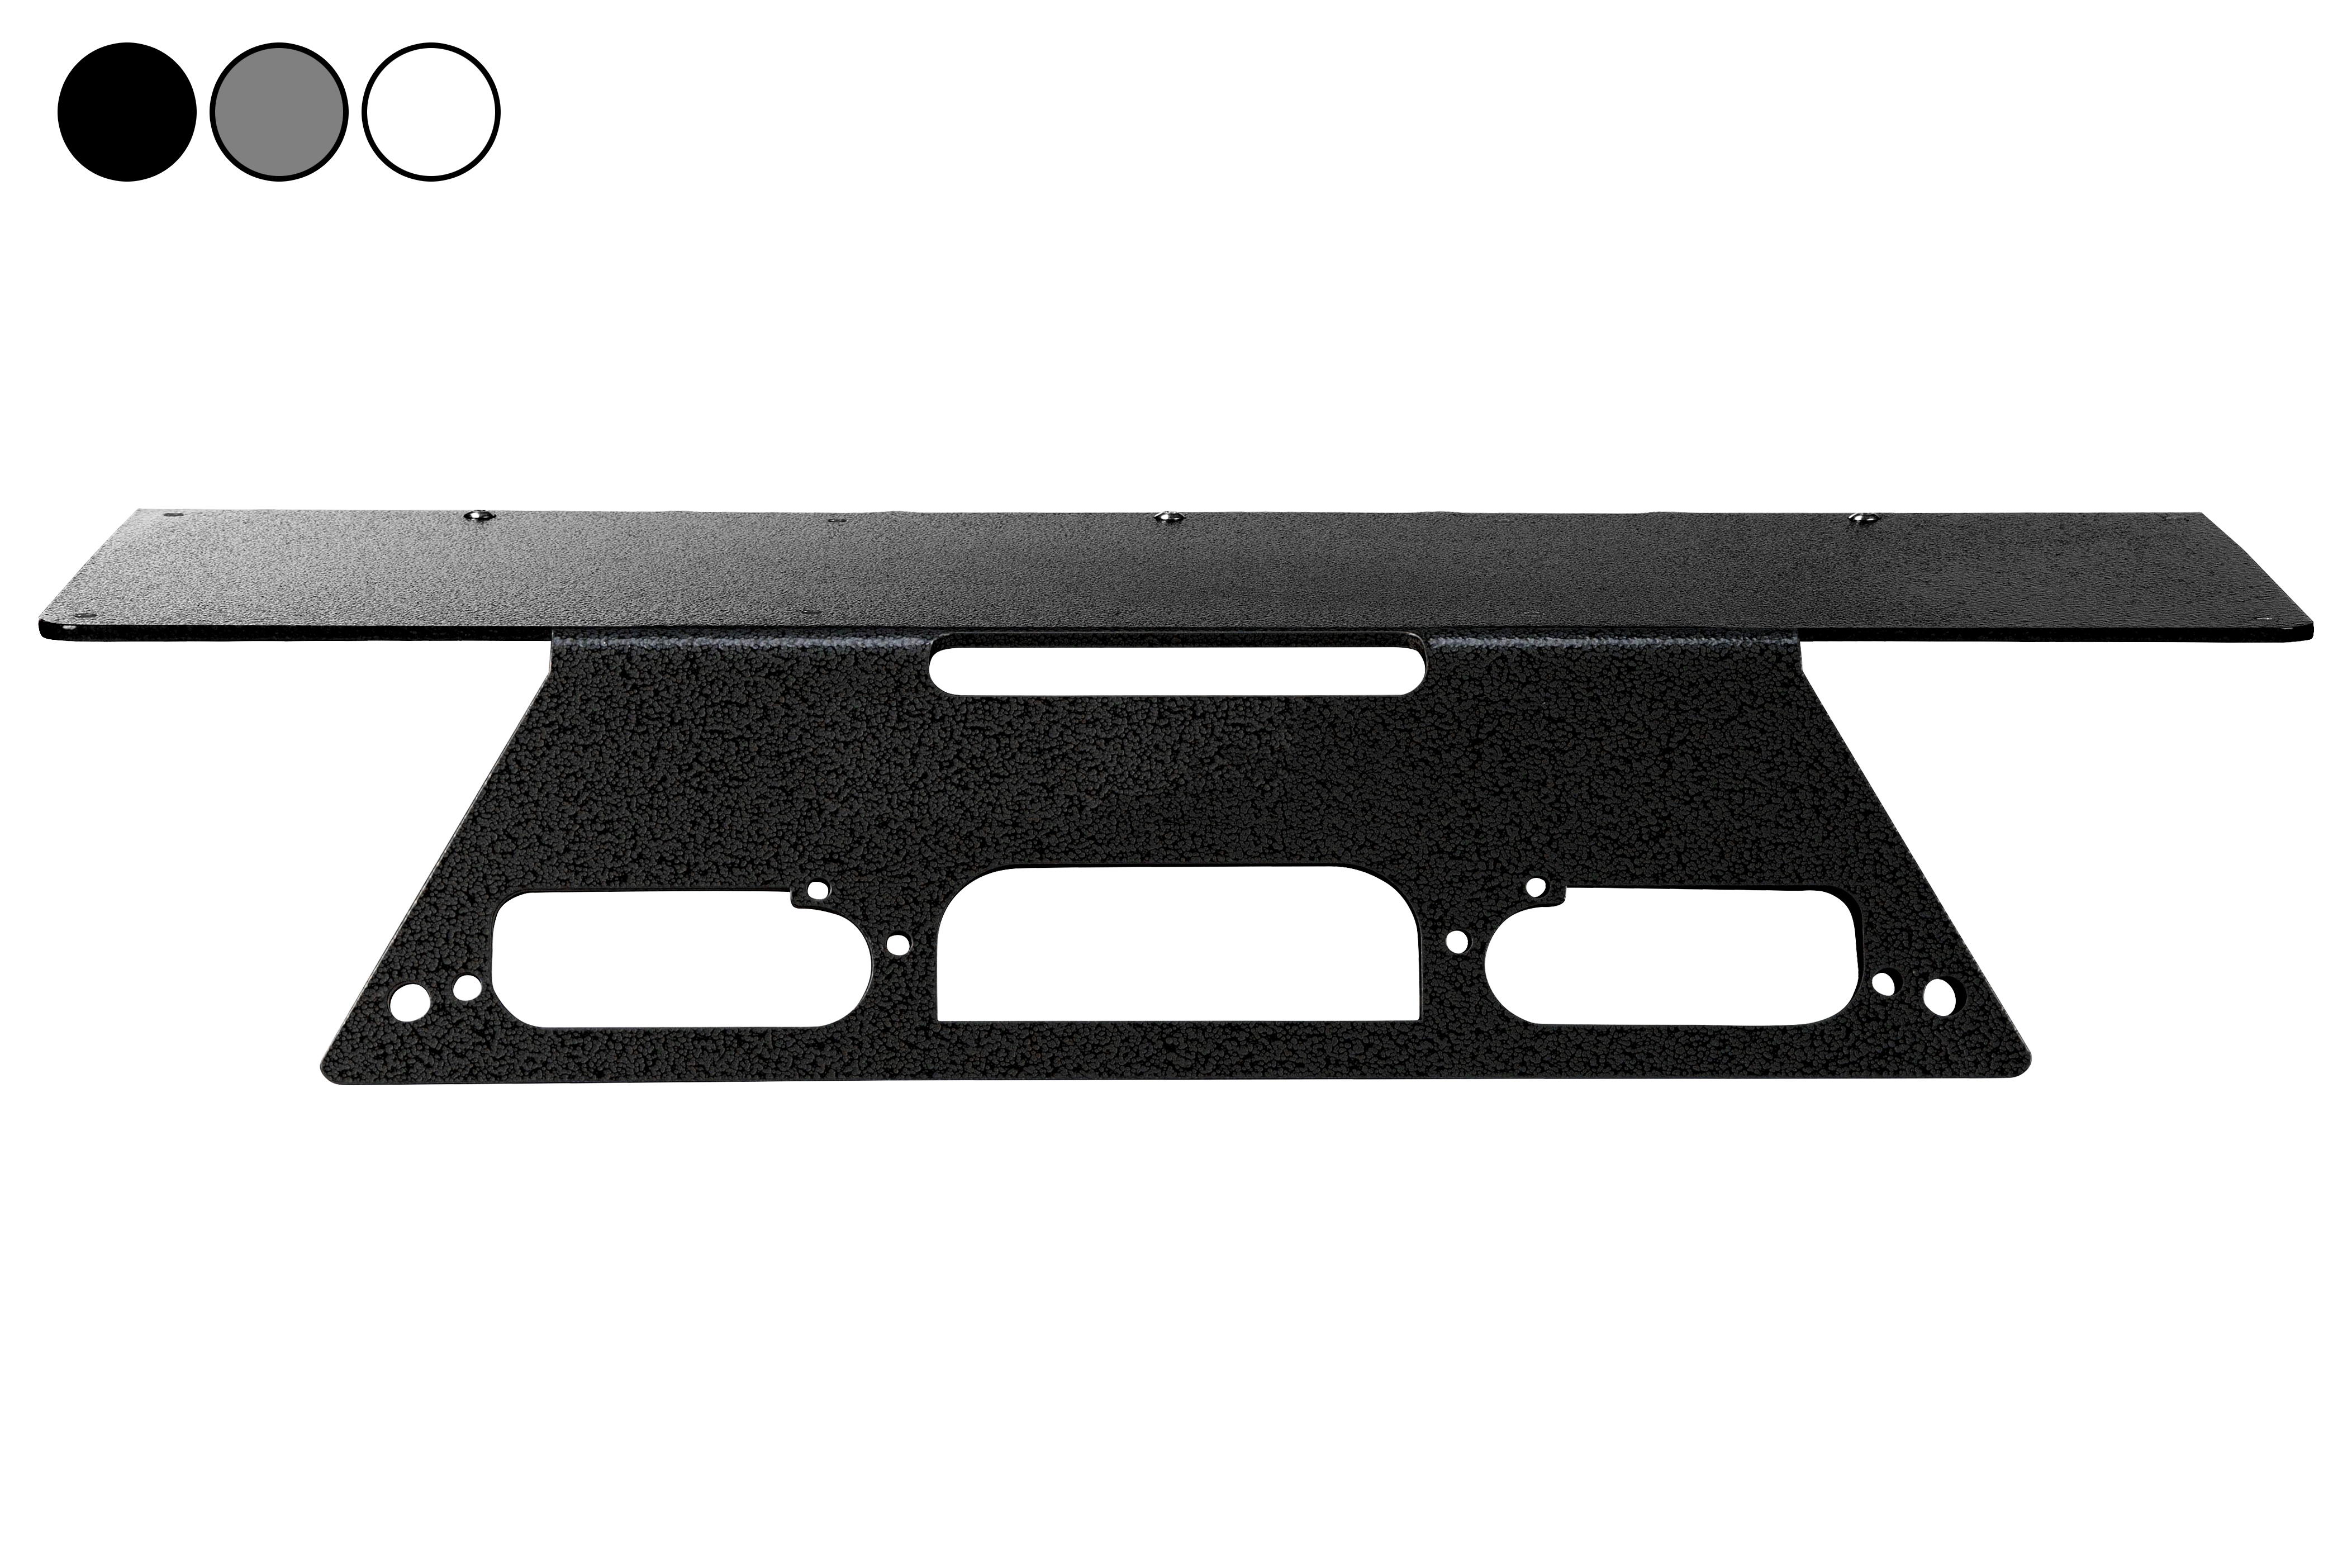 2019 Ford Superduty F350 Truck LED Permanent No Drill Mounting Plate for Spotlights